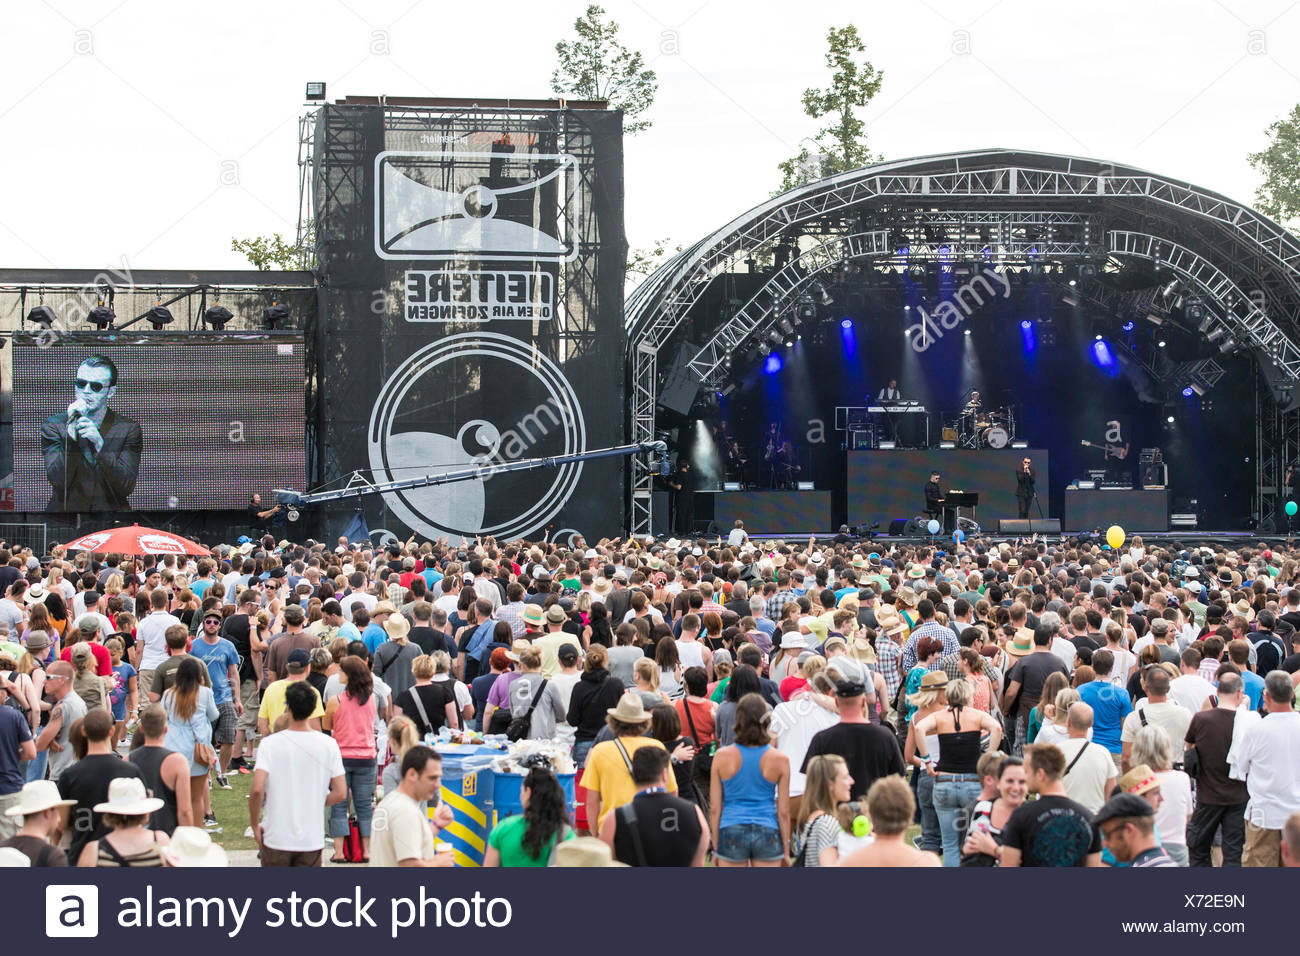 British synth-pop band Hurts performing live at Heitere Open Air in Zofingen, Aargau, Switzerland, Europe - Stock Image